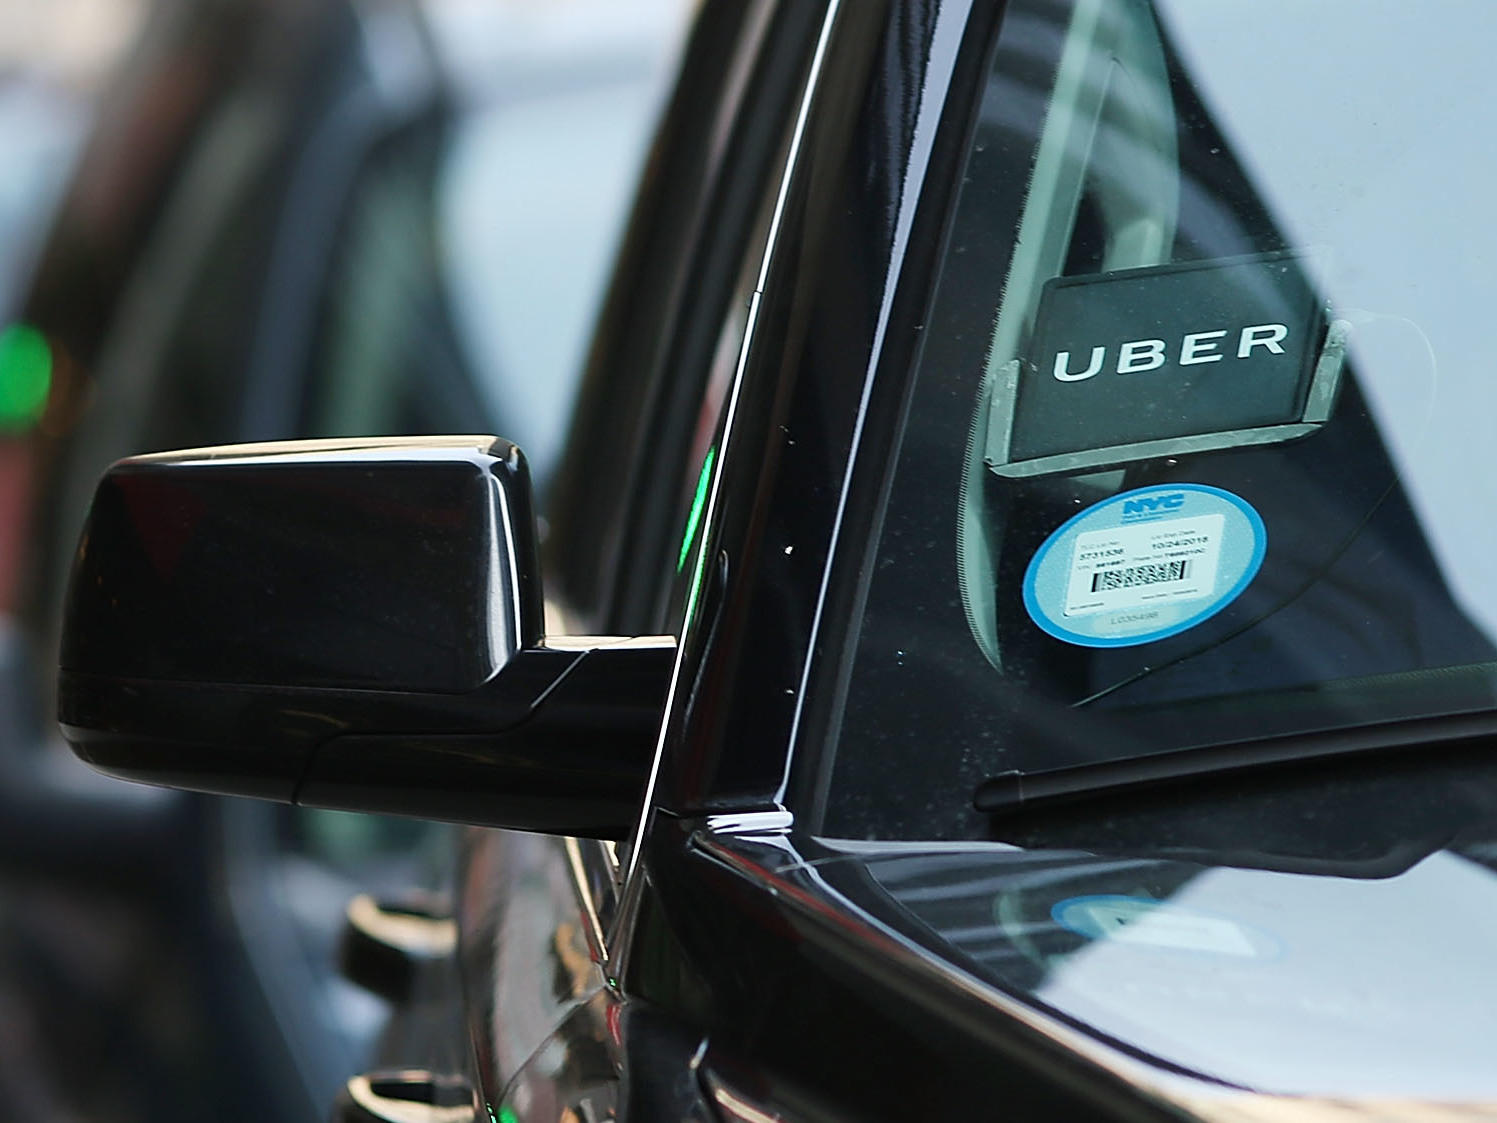 Uber starts offering rides to the doctor, health care providers